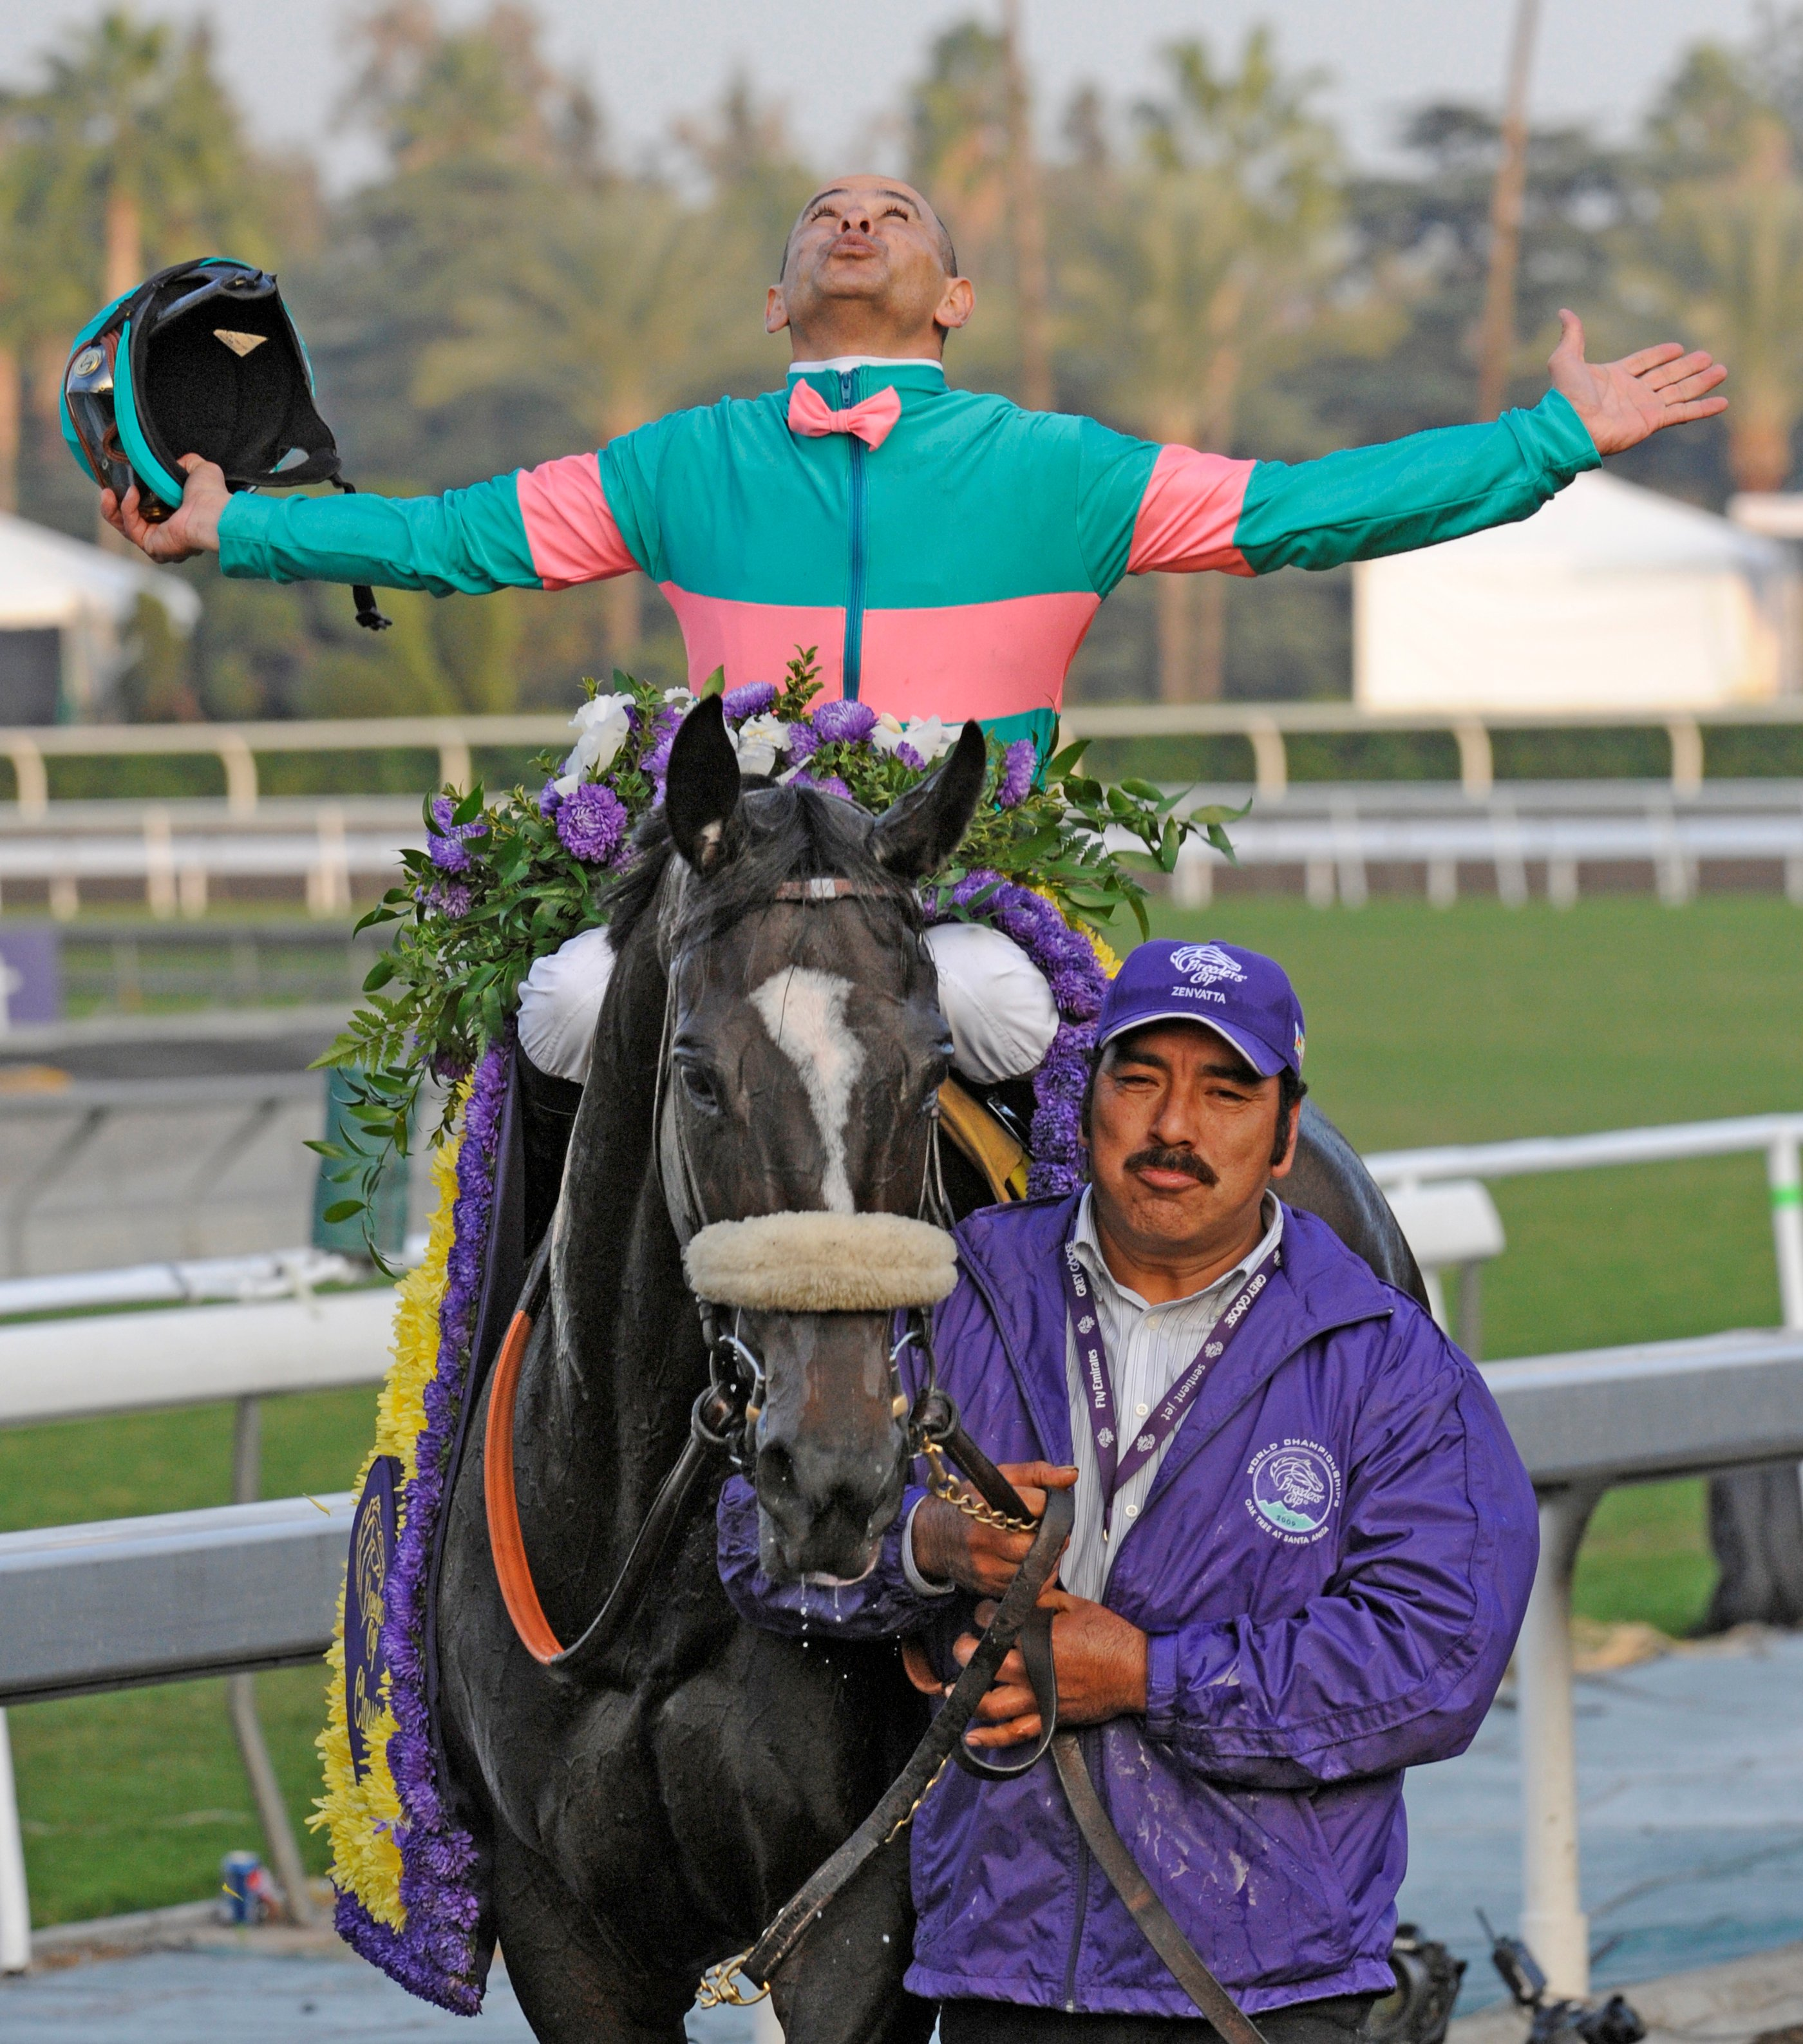 Zenyatta (Mike Smith up) after winning the 2009 Breeders' Cup Classic at Santa Anita (Skip Dickstein)